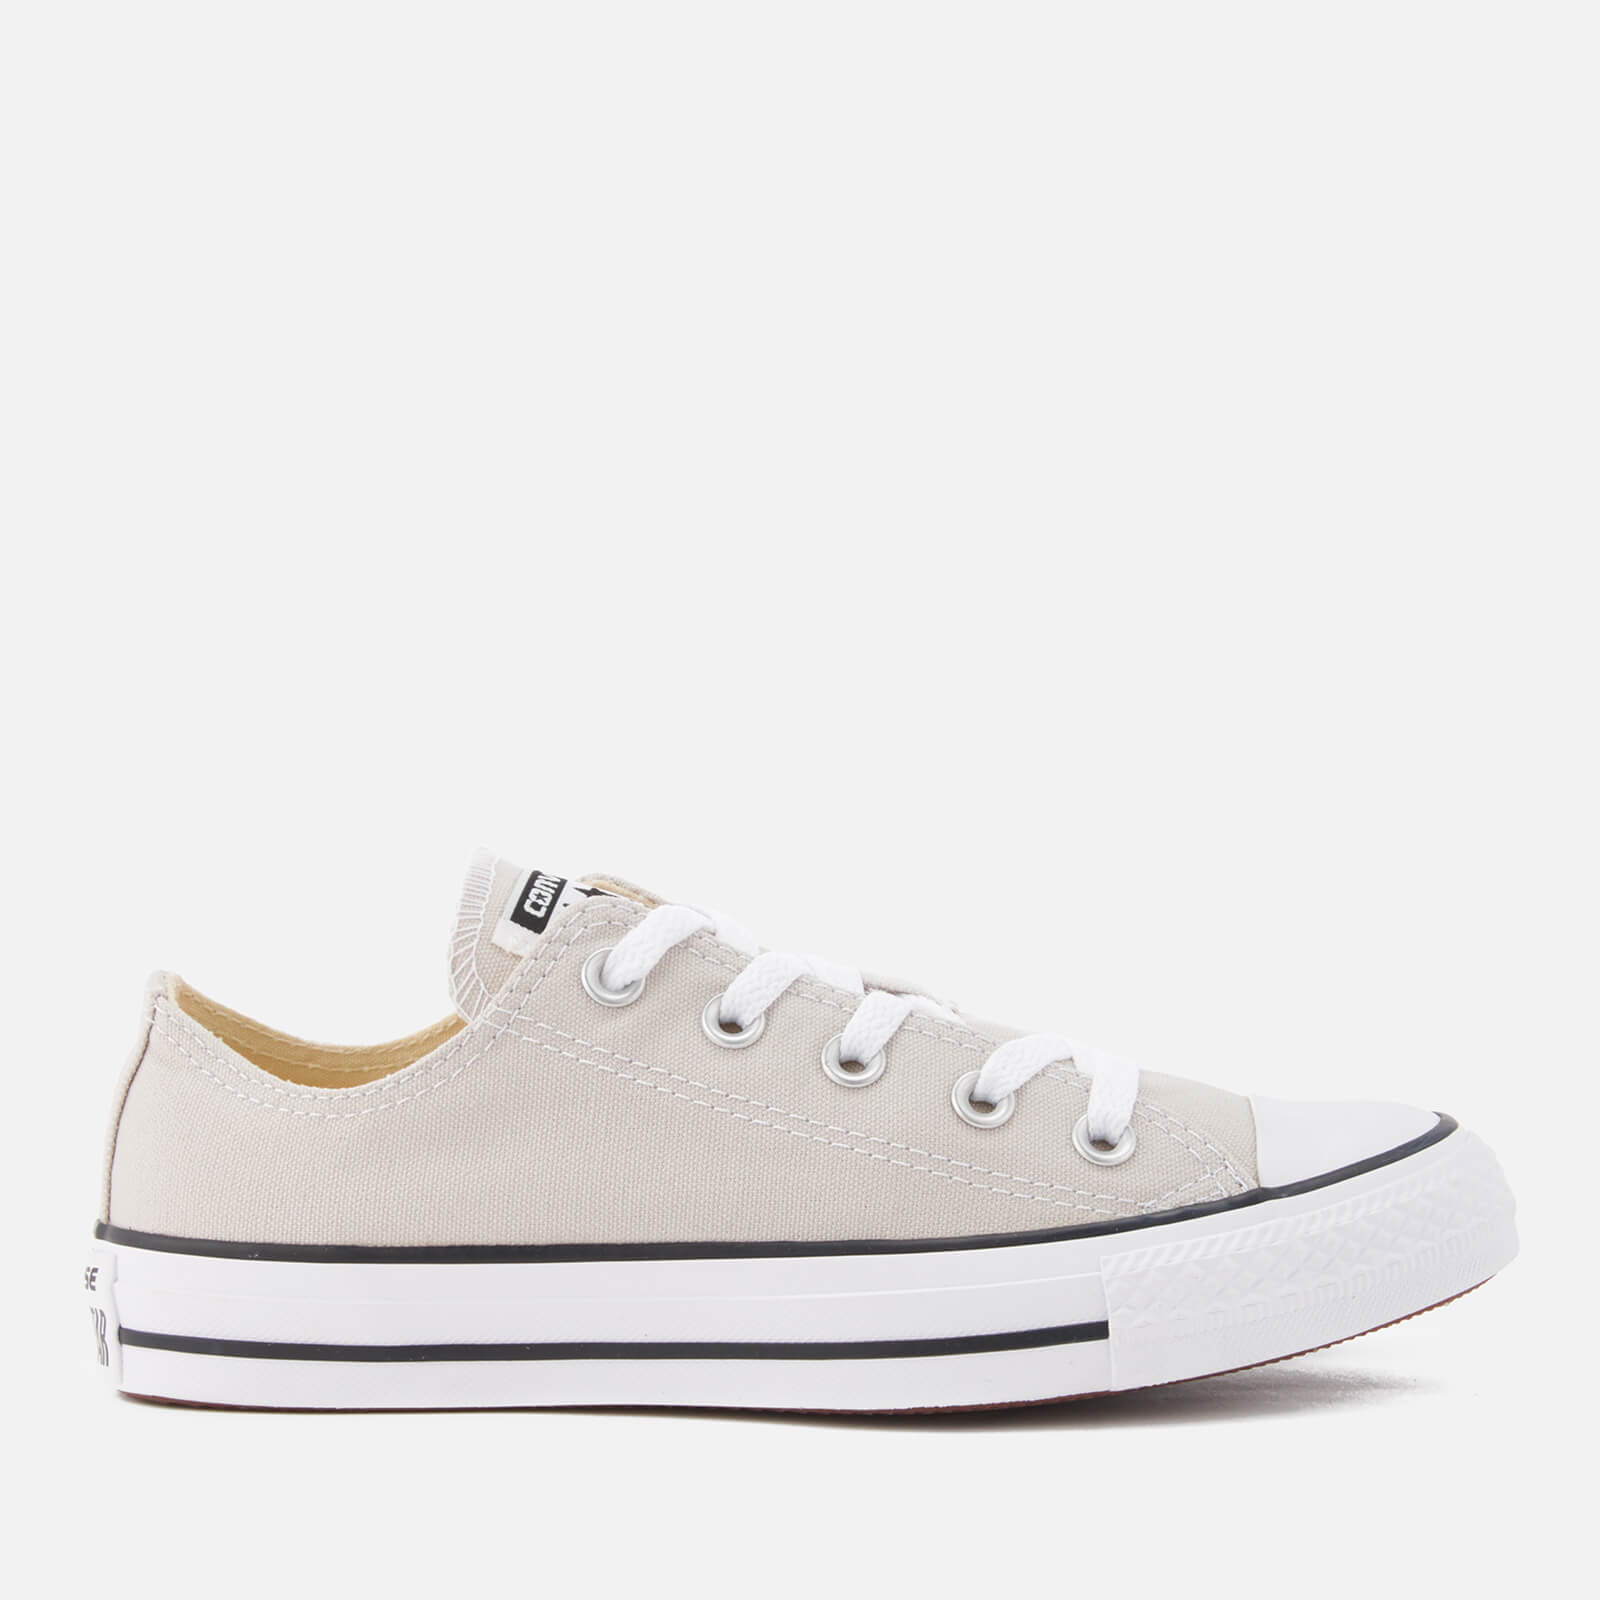 0d812509434f Converse Women s Chuck Taylor All Star Ox Trainers - Pale Putty - Free UK  Delivery over £50